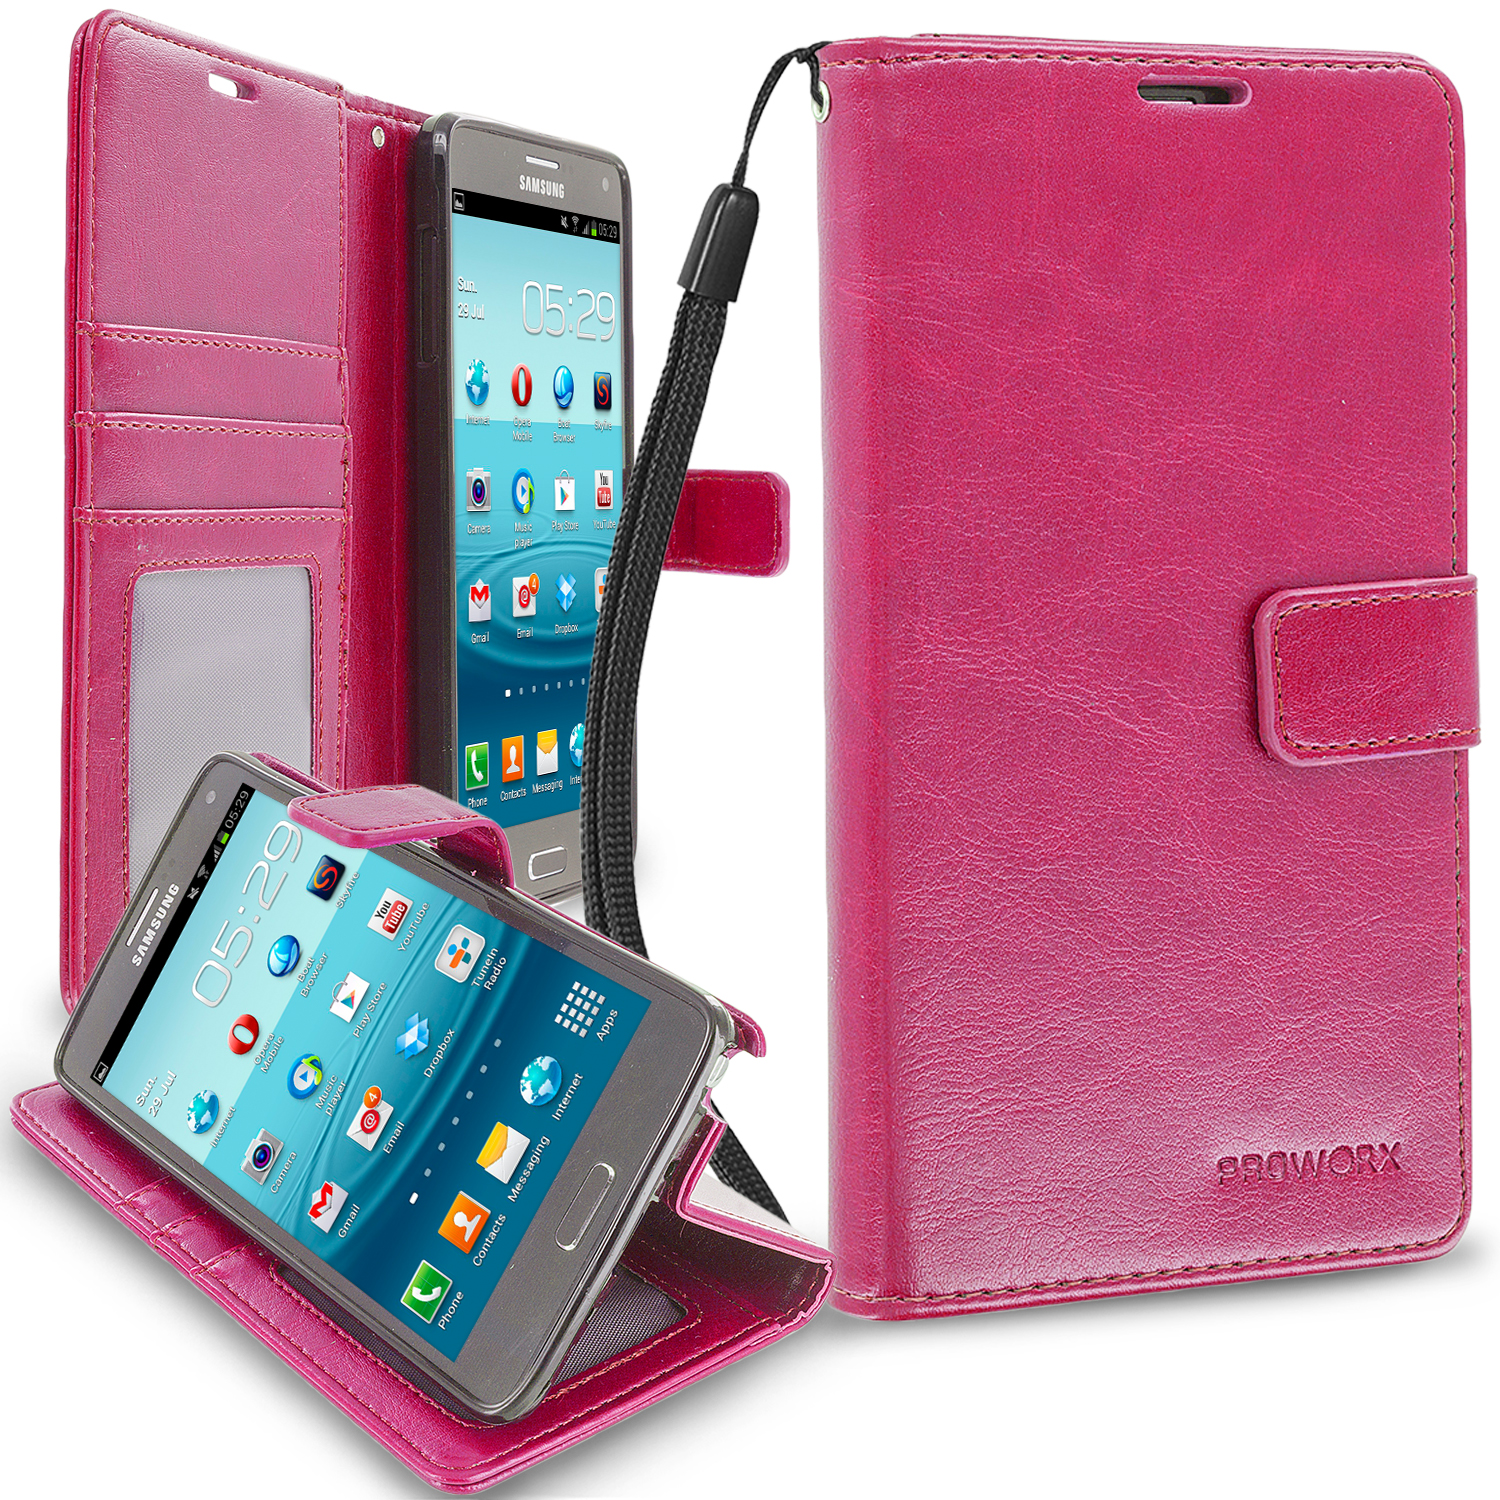 Samsung Galaxy Note 4 Hot Pink ProWorx Wallet Case Luxury PU Leather Case Cover With Card Slots & Stand